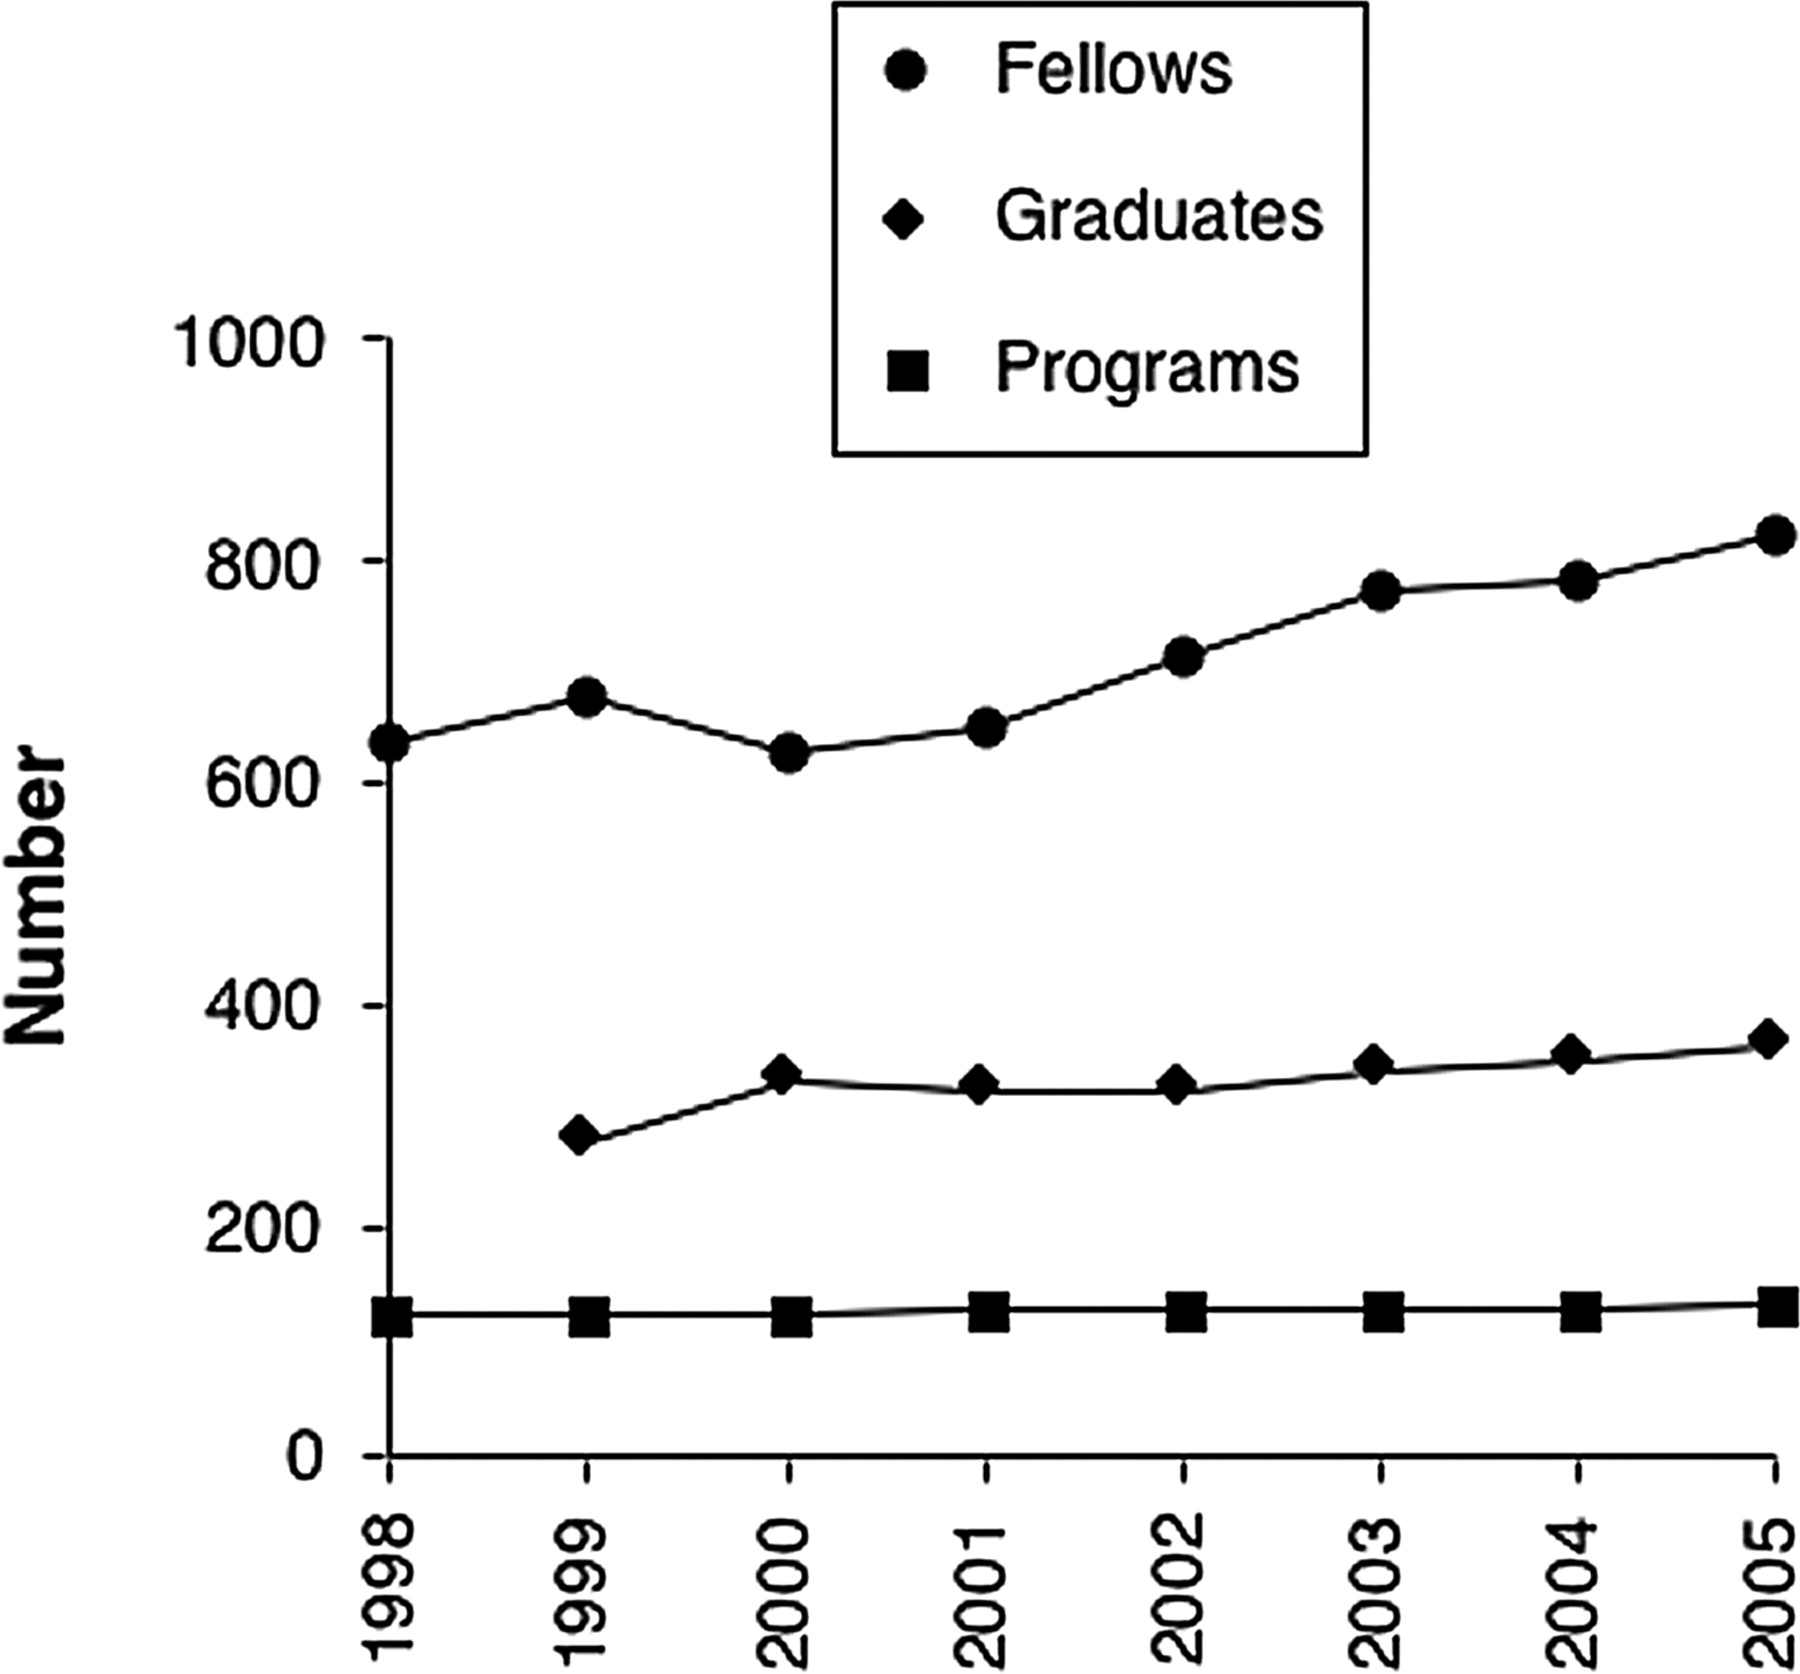 Adult Nephrology Fellowship Training in the United States: Trends